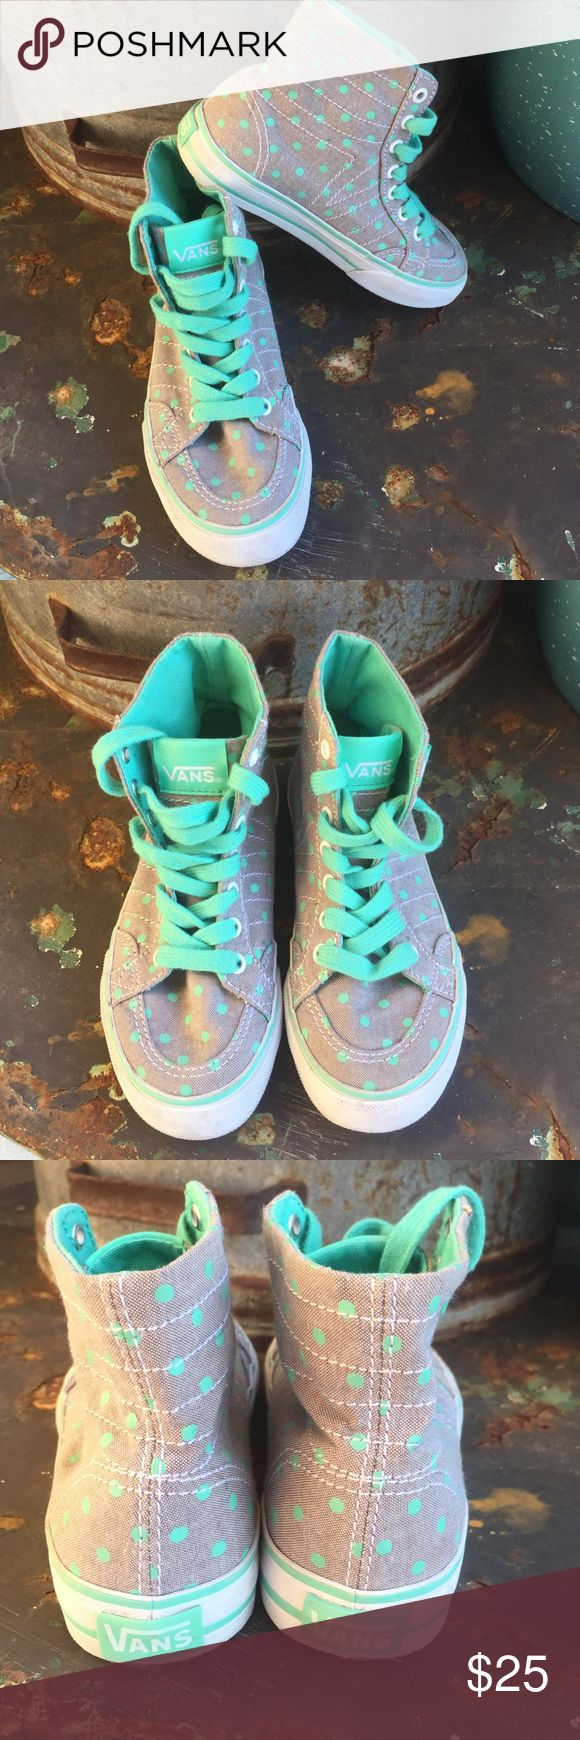 VANS Gray/Mint Green Polka Dots Missy Size 10.5. Great condition as photos show. Gray with mint green polka dots and mint green shoe laces reasonable offers welcome Vans Shoes Sneakers